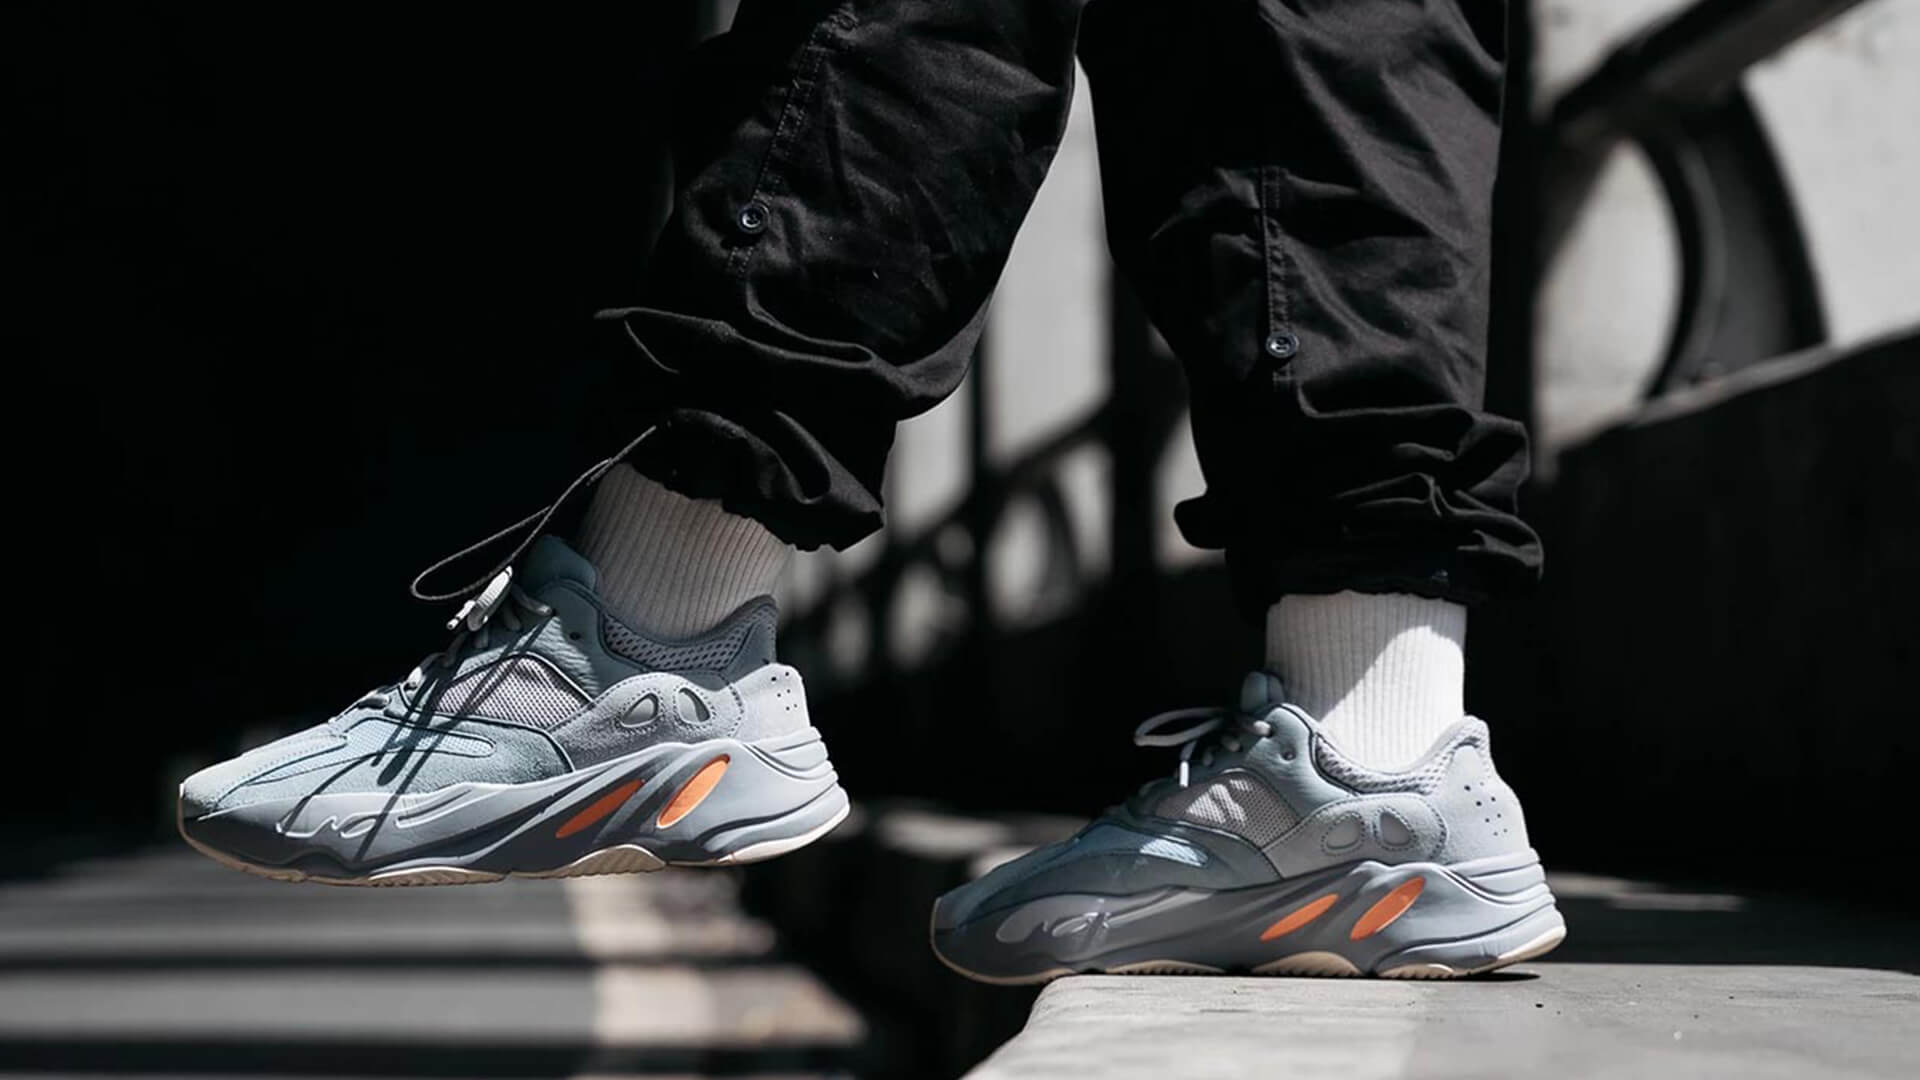 cms cdn.thesolesupplier.co.uk201909yeezy 700 1.jpg